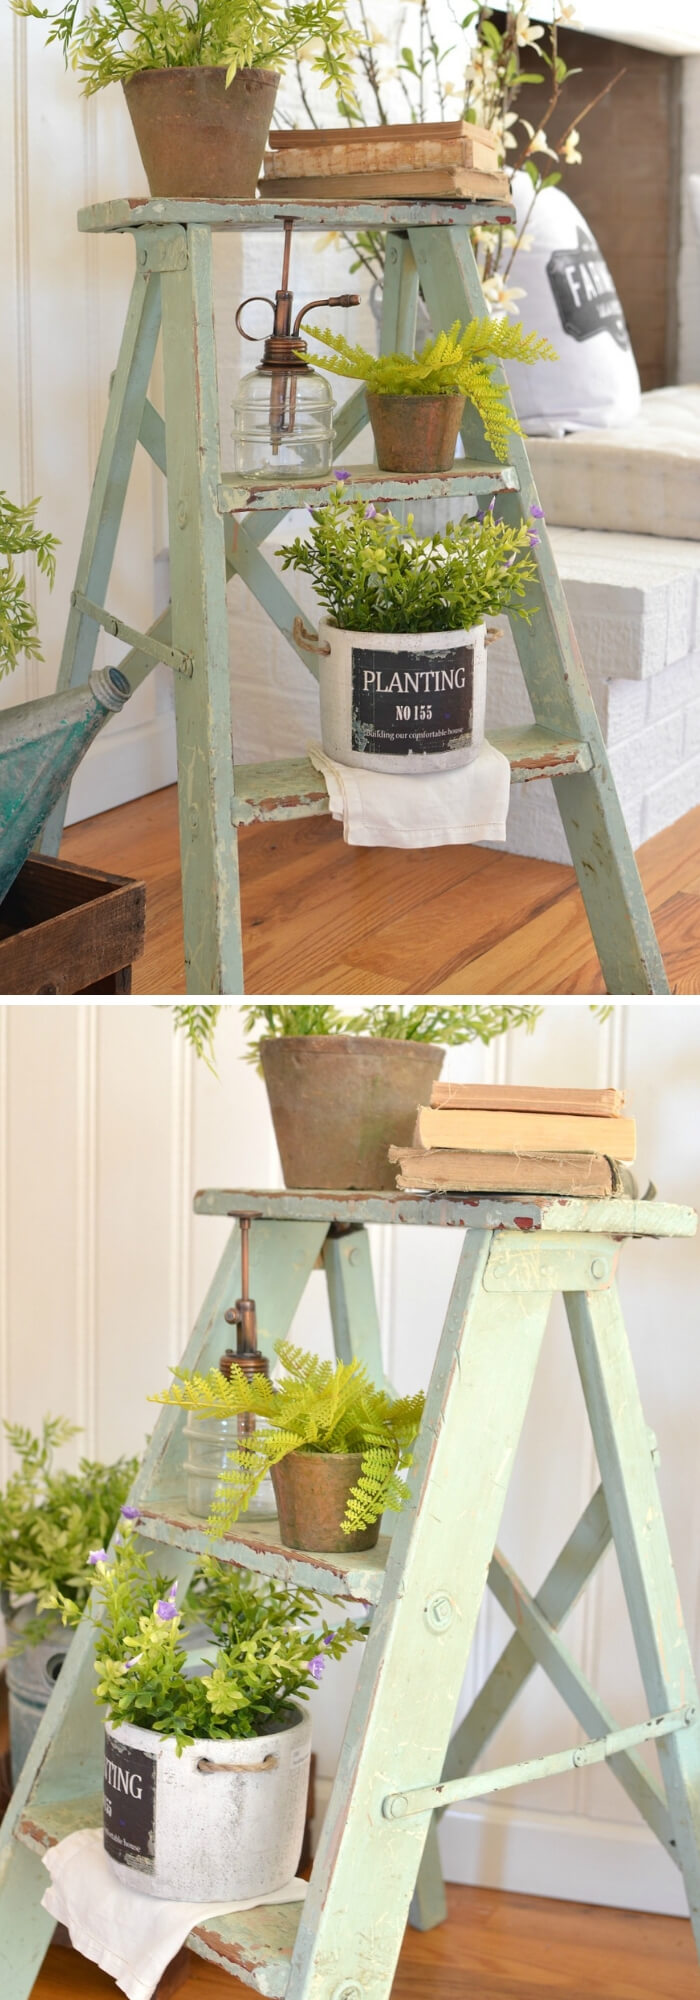 Painted Pots on green ladder | Best Farmhouse Indoor Plant Decor Ideas & Designs